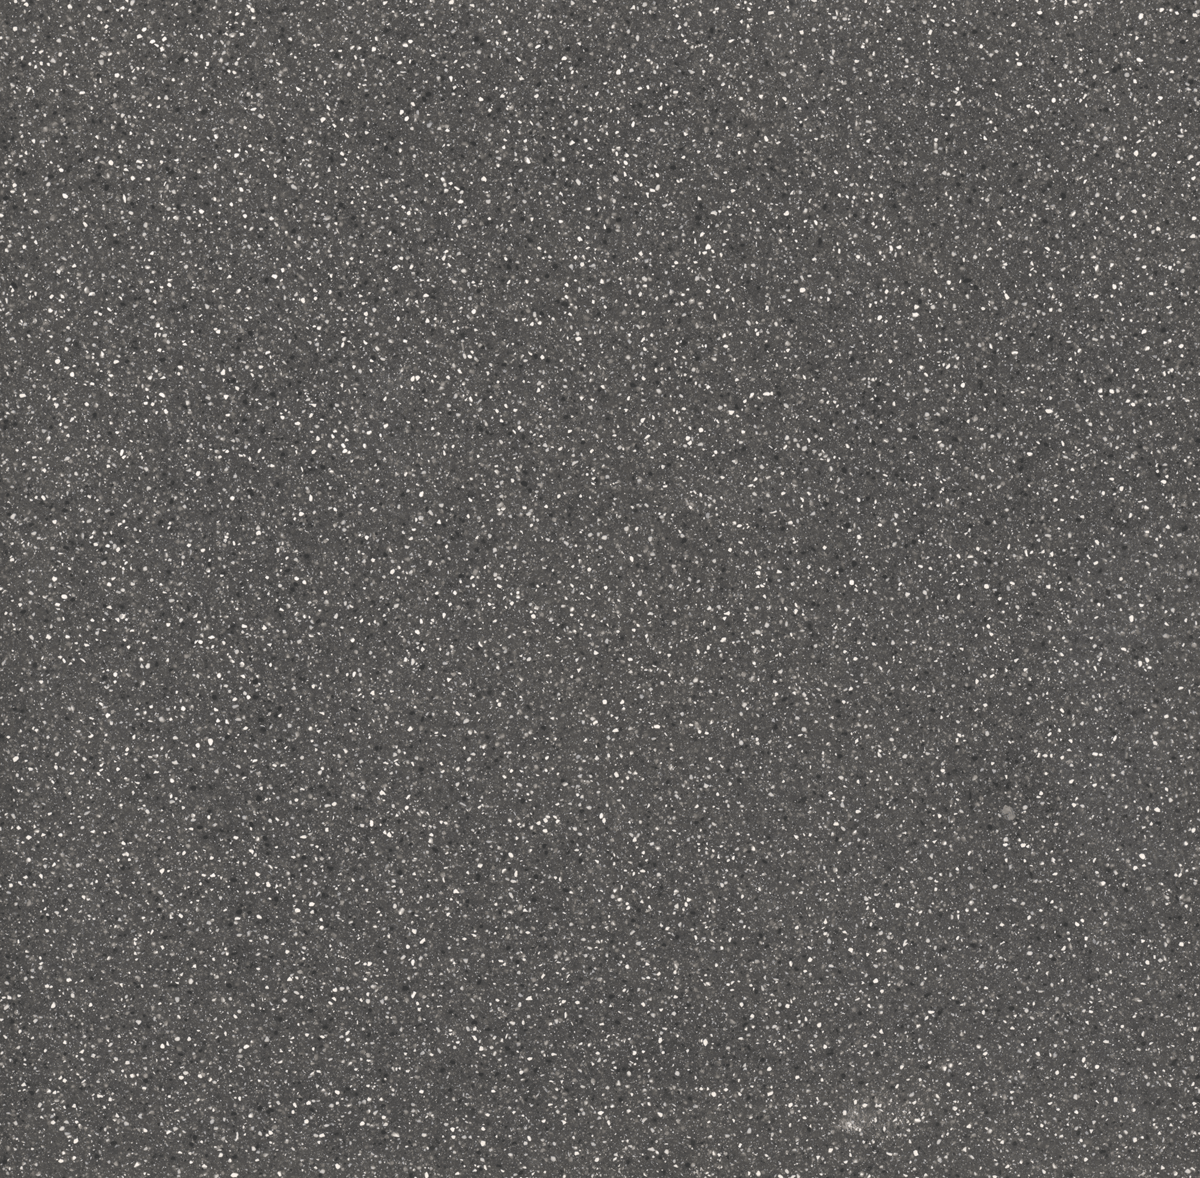 Terreon solid surface material bradley corporation for Color gray or grey